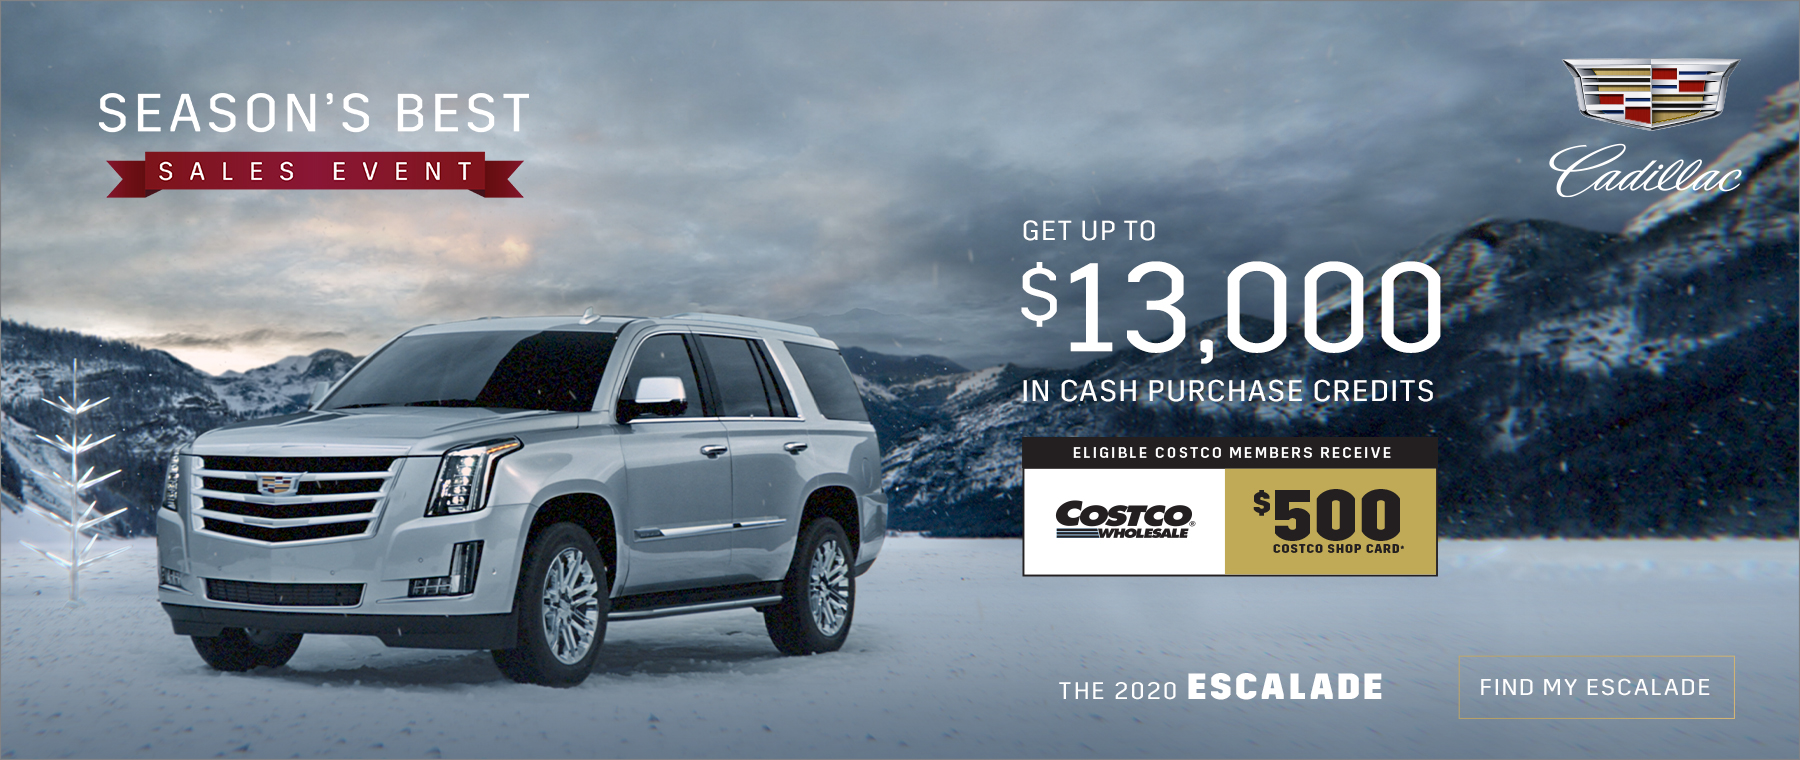 2020 Escalade - Season's Best